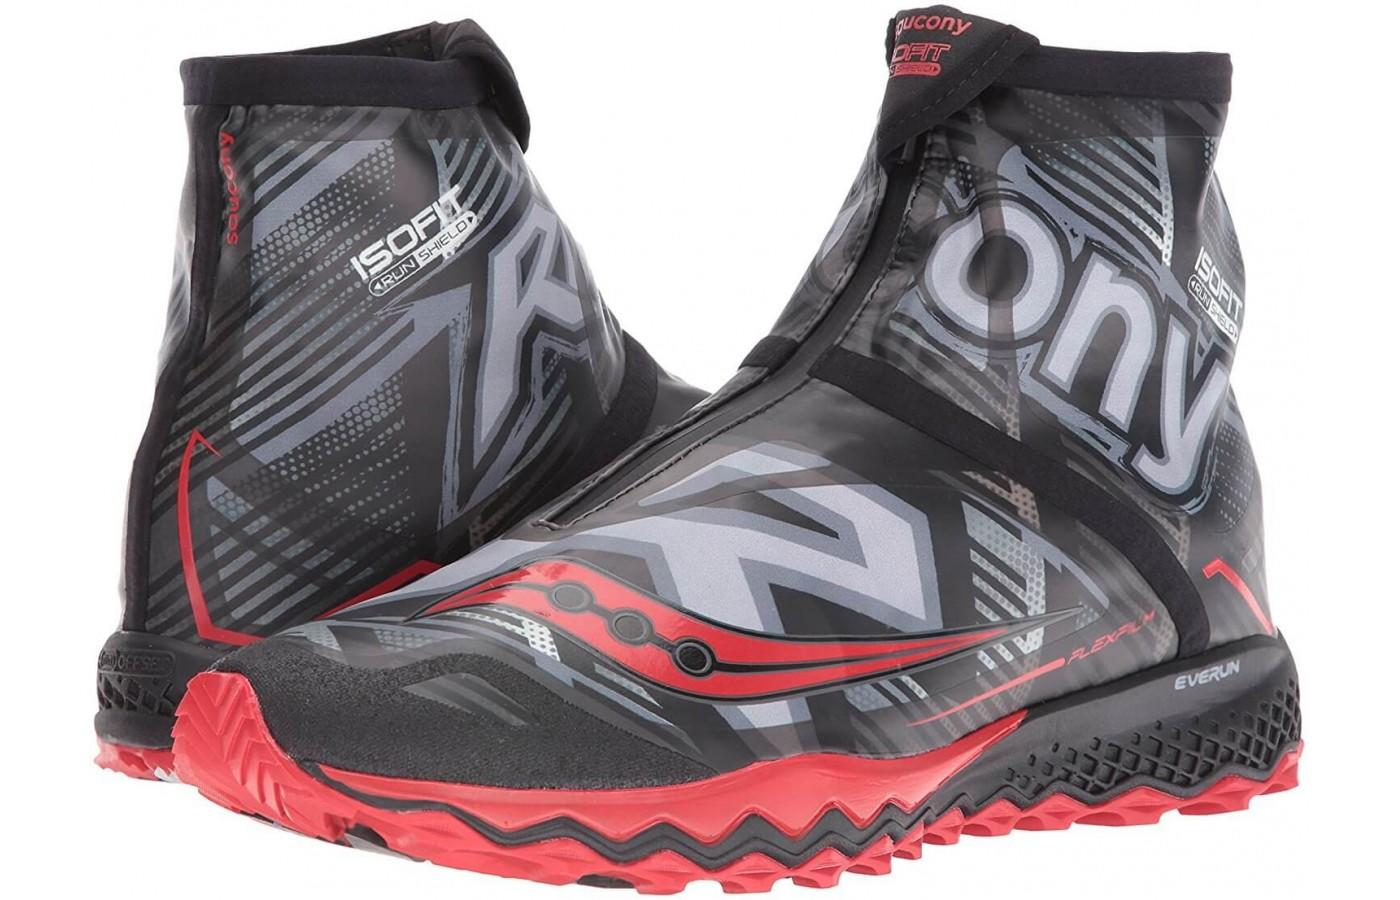 The Razor Ice+ is a specialized running shoe